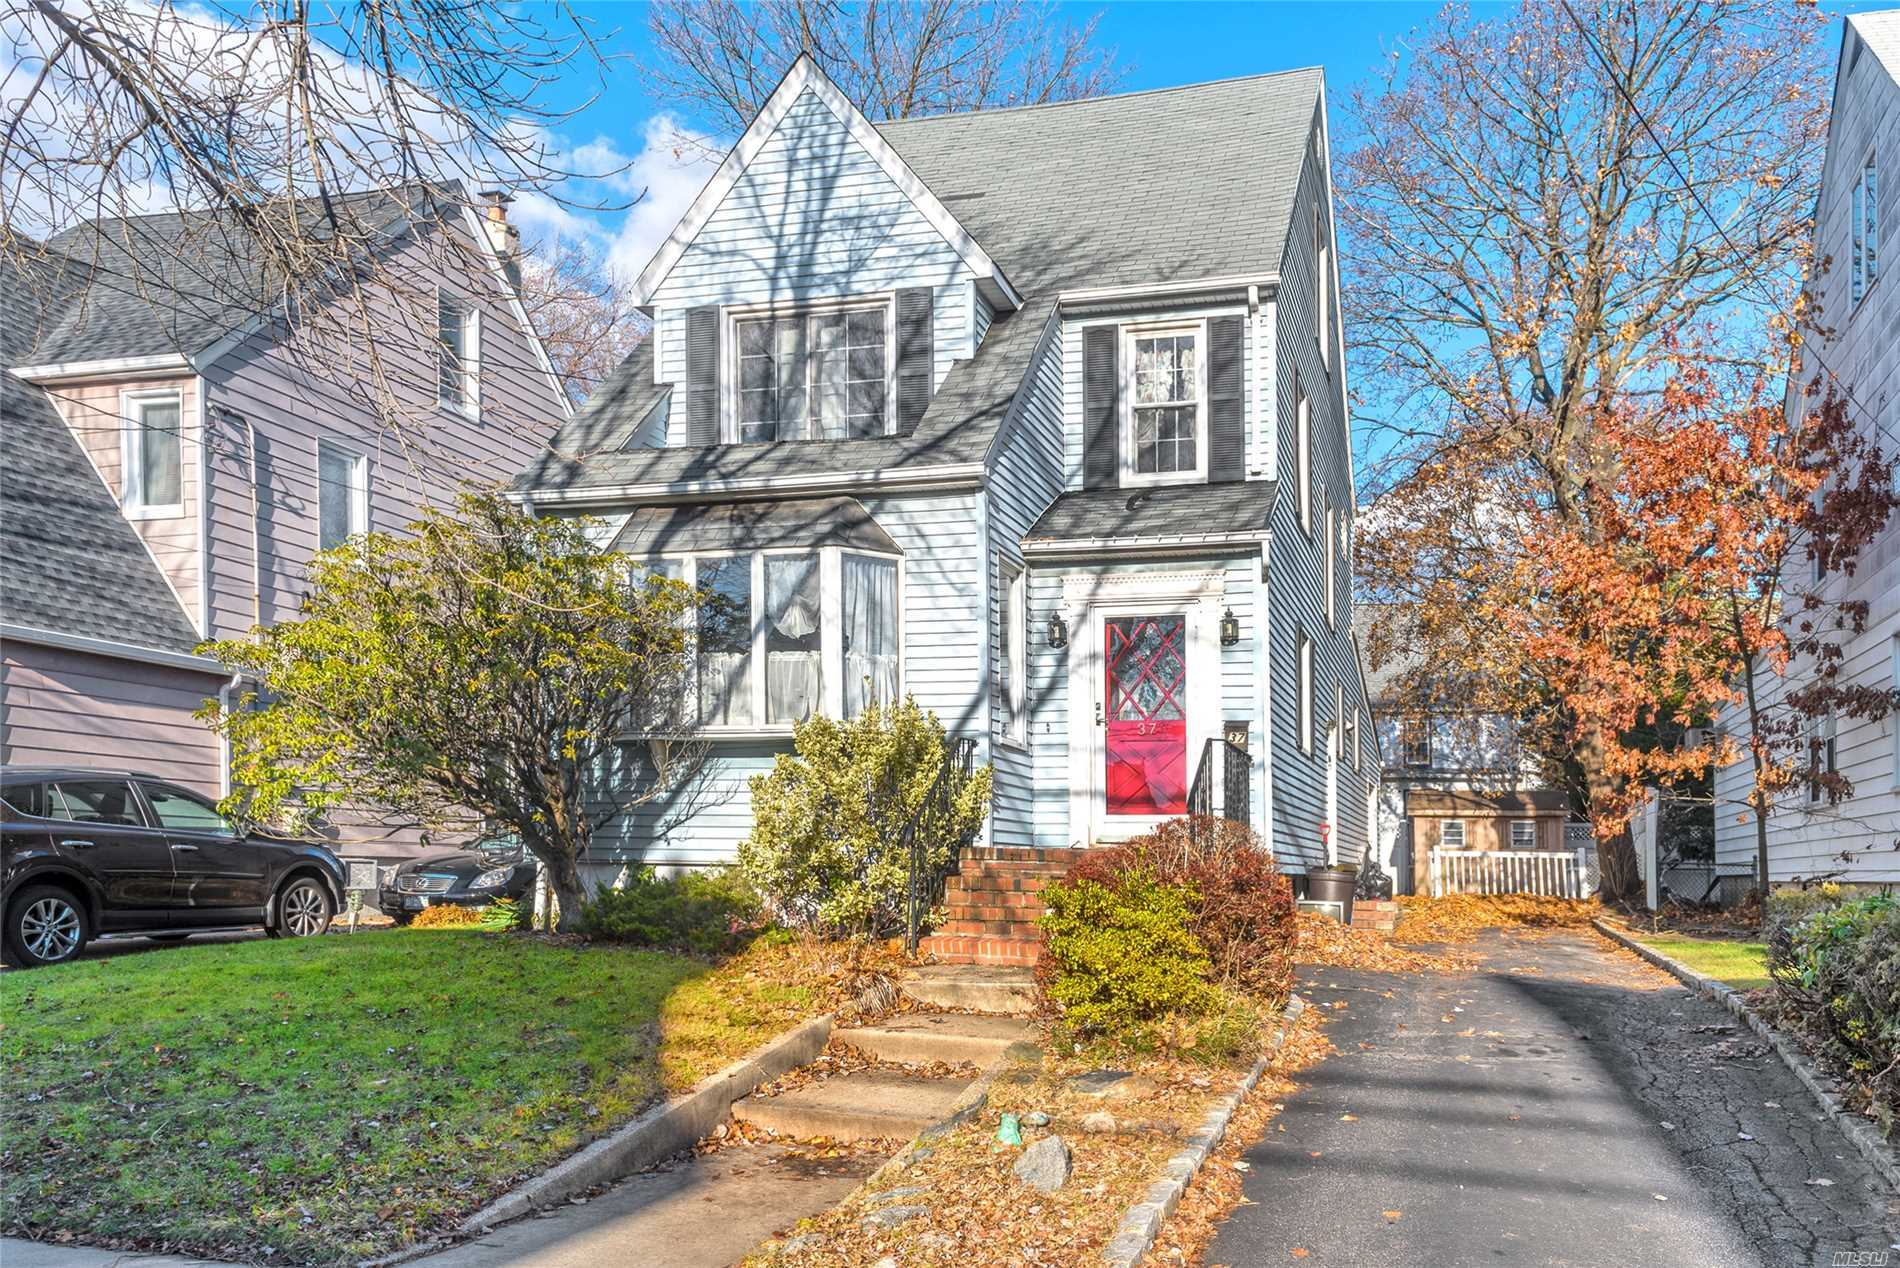 Great Large Expanded Gibson Colonial With Hardwood Floors Thru Out, Large Sunken Den Off Kitchen, Banquet Size Dining Room. Seconds From Lirr, Bus, Shops And Park. Roof, Windows, Siding And Heat Are Updated